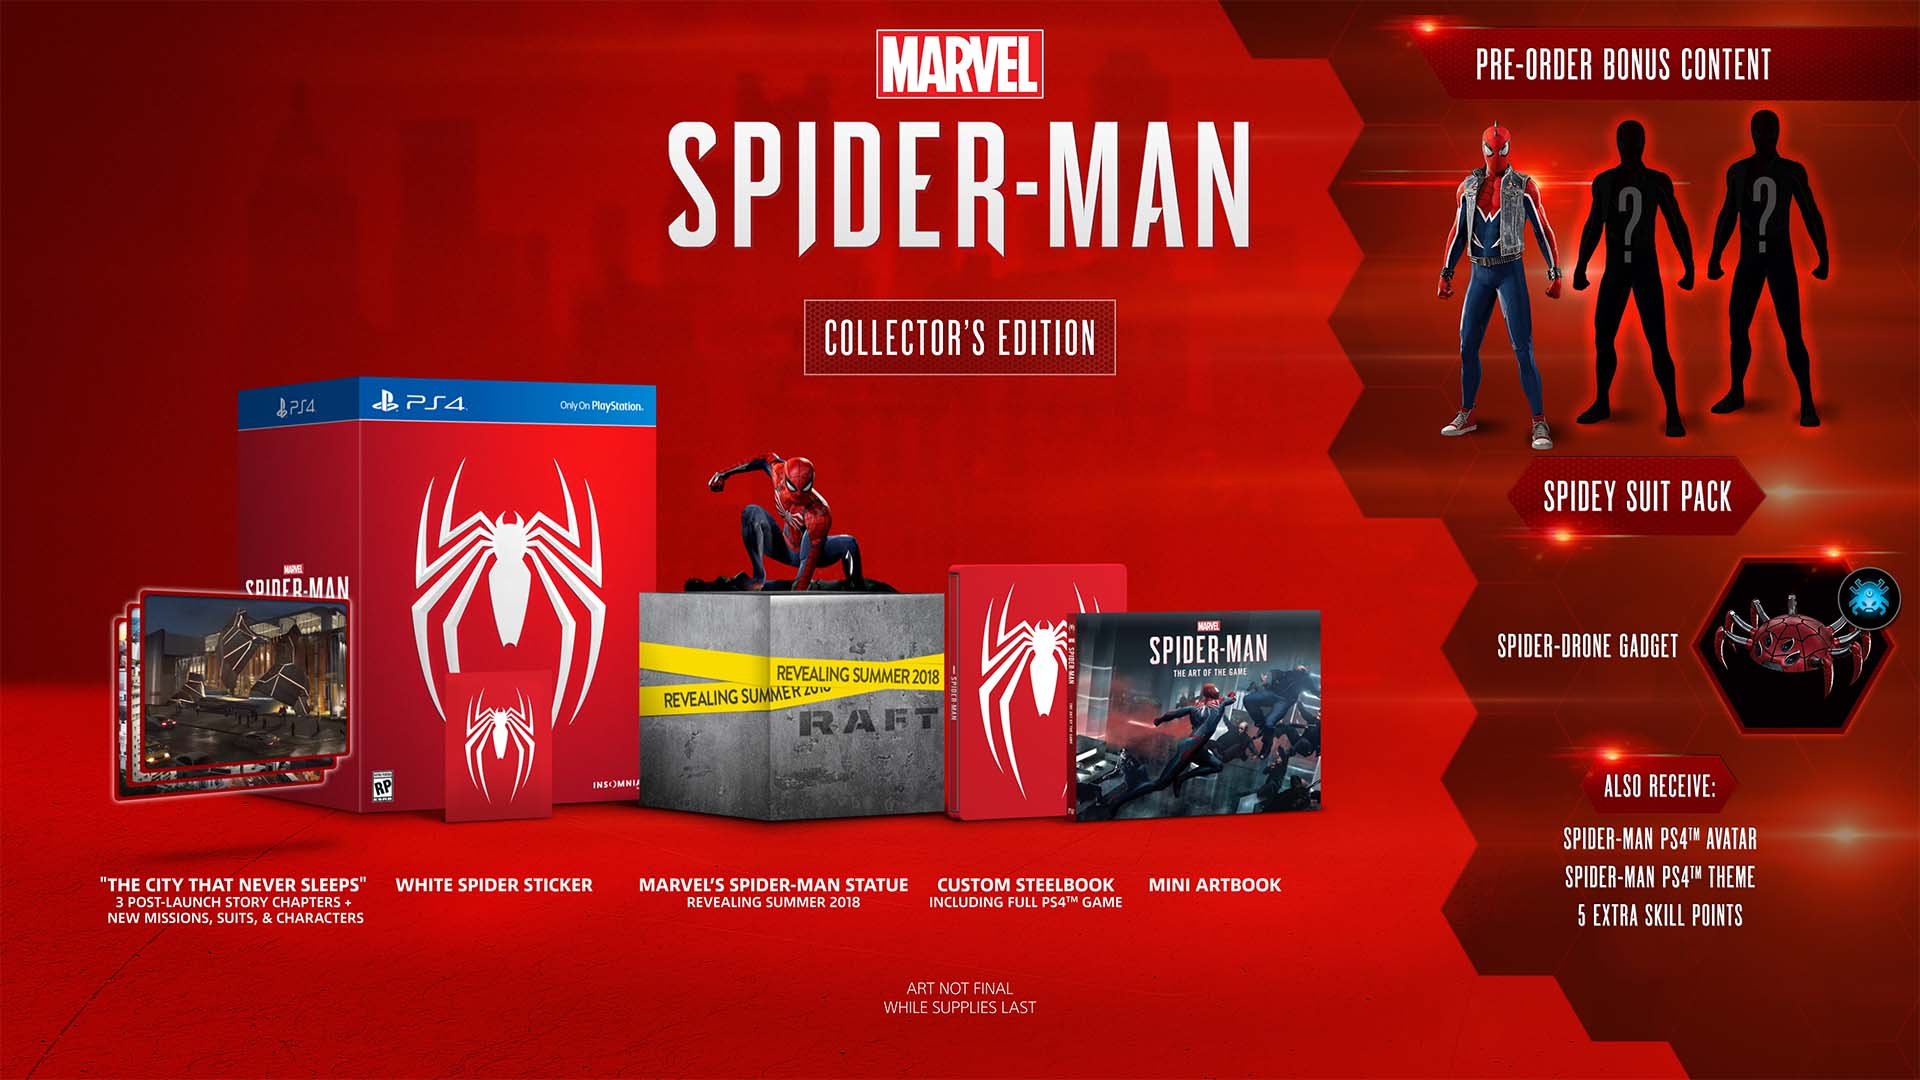 Marvel's Spider-Man Collector's Edition SG